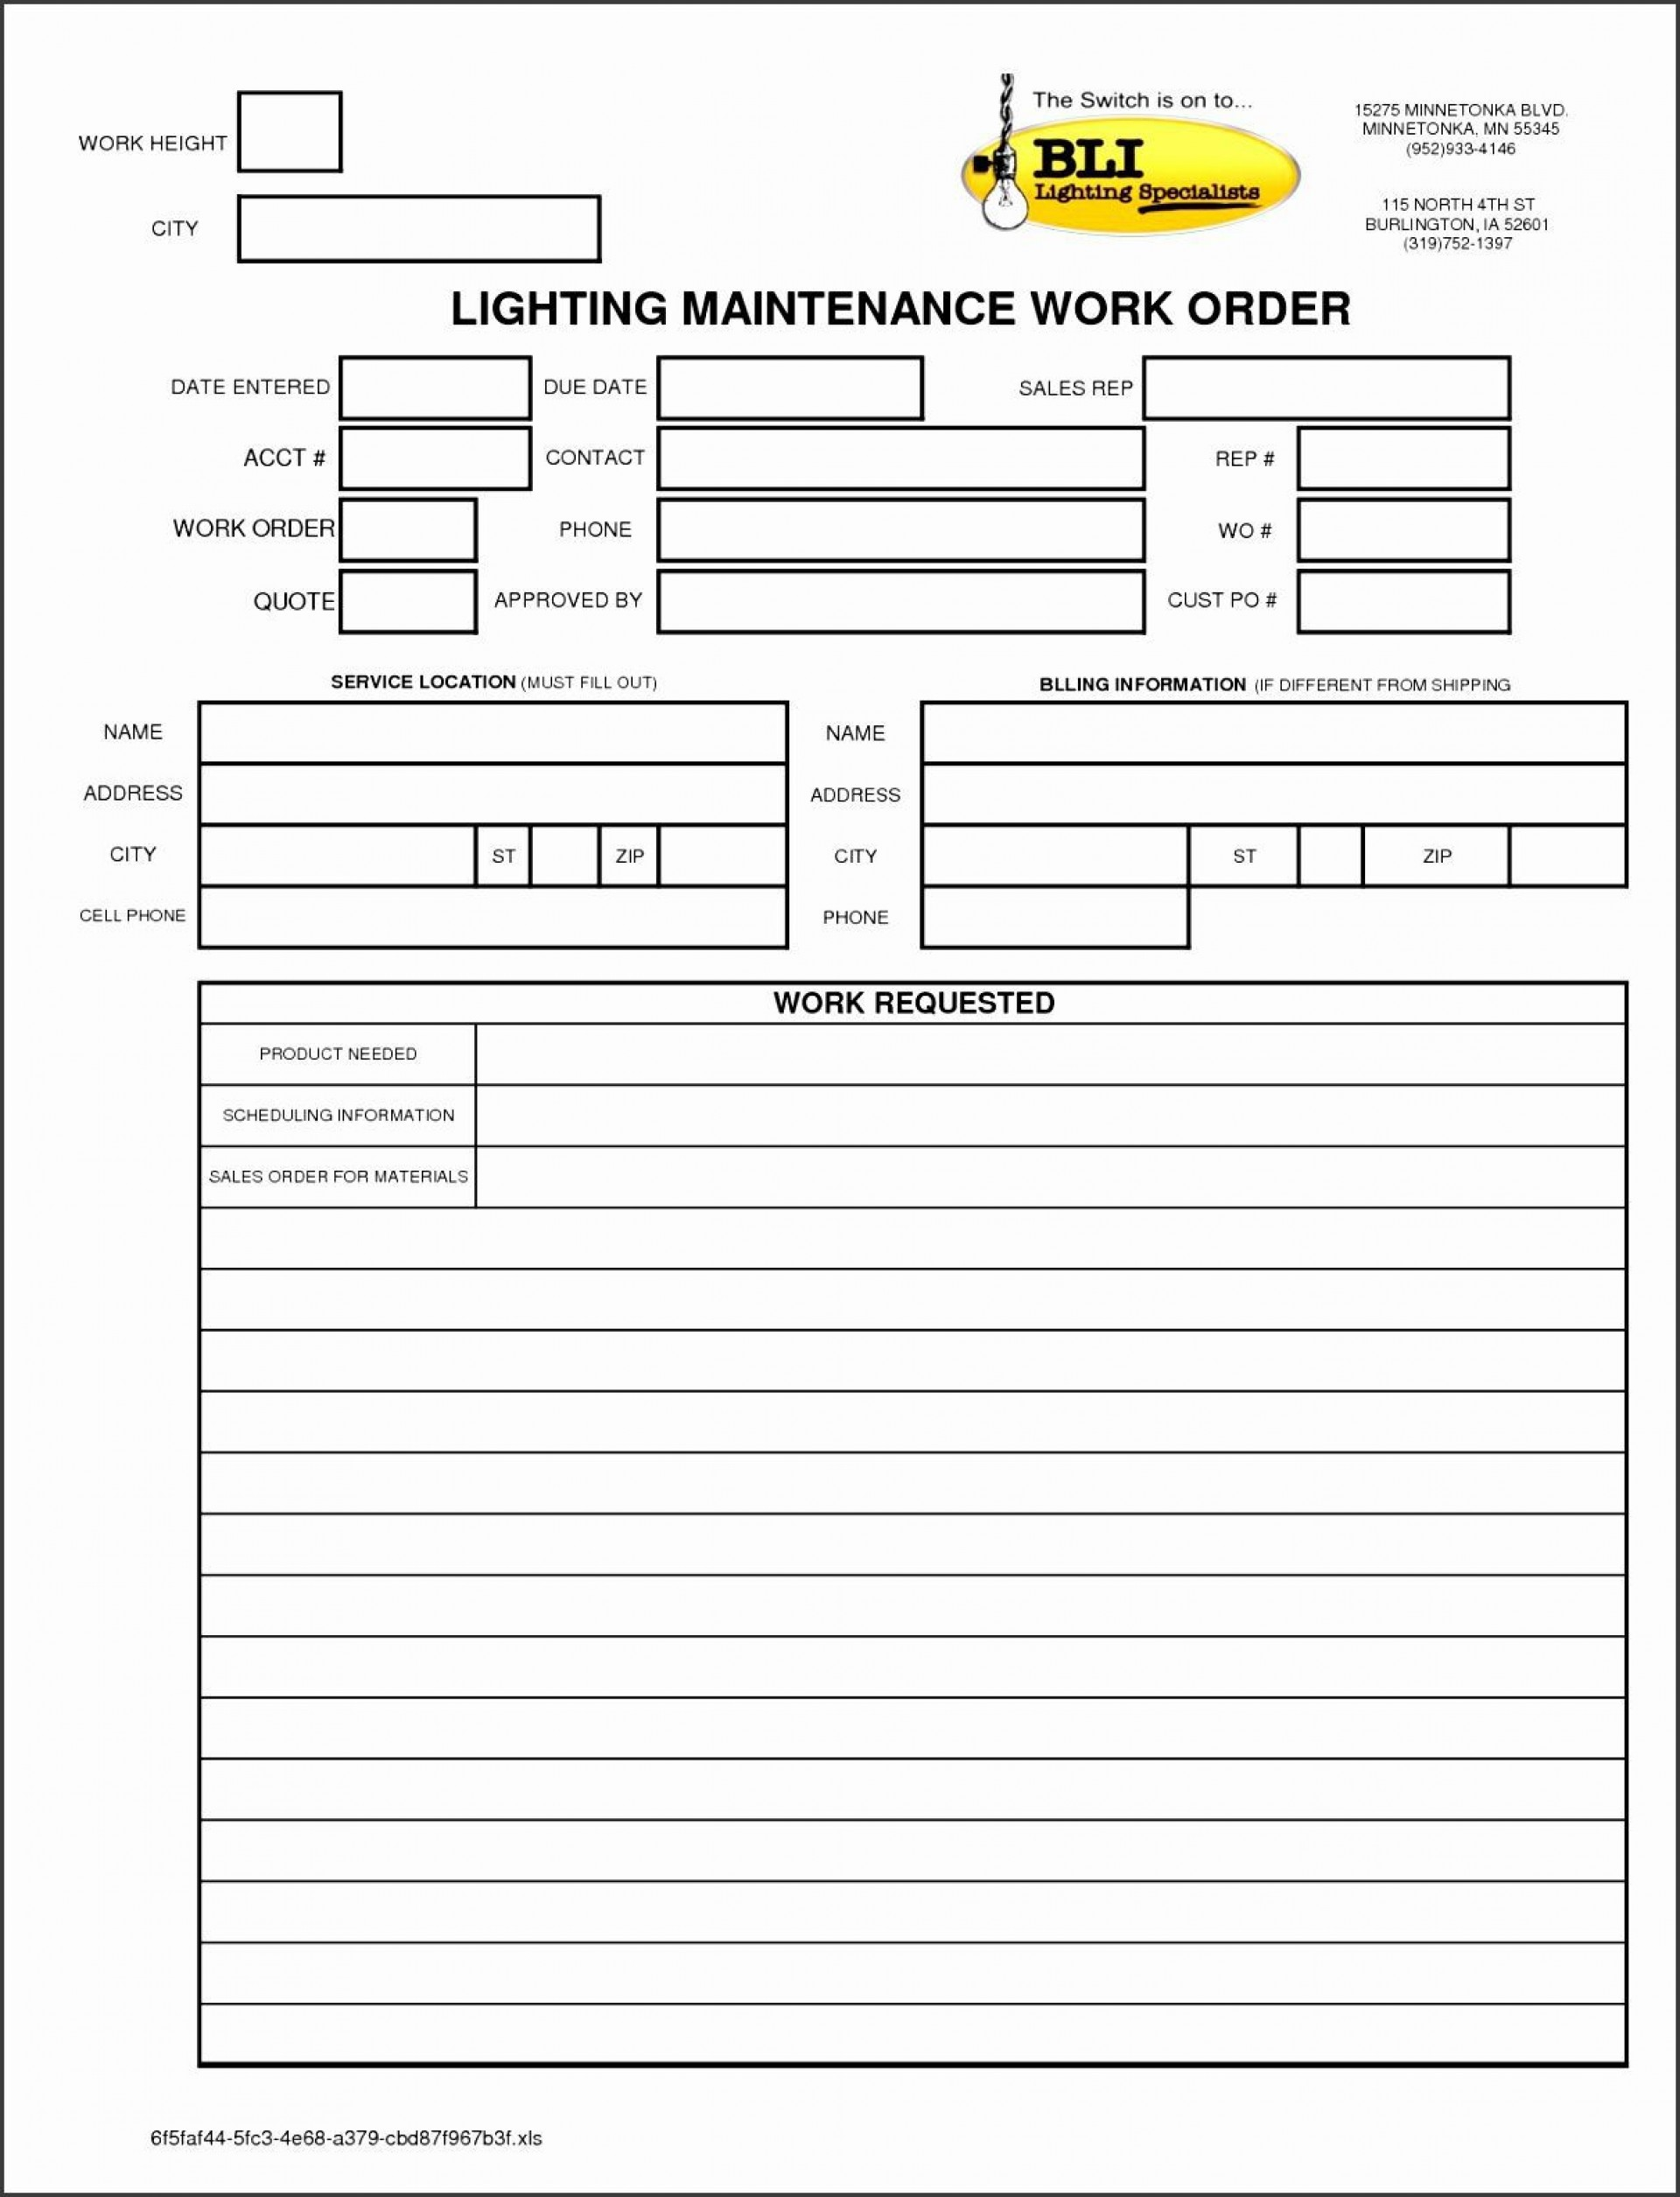 001 Archaicawful Maintenance Work Order Template Concept  Form Free Sample1920